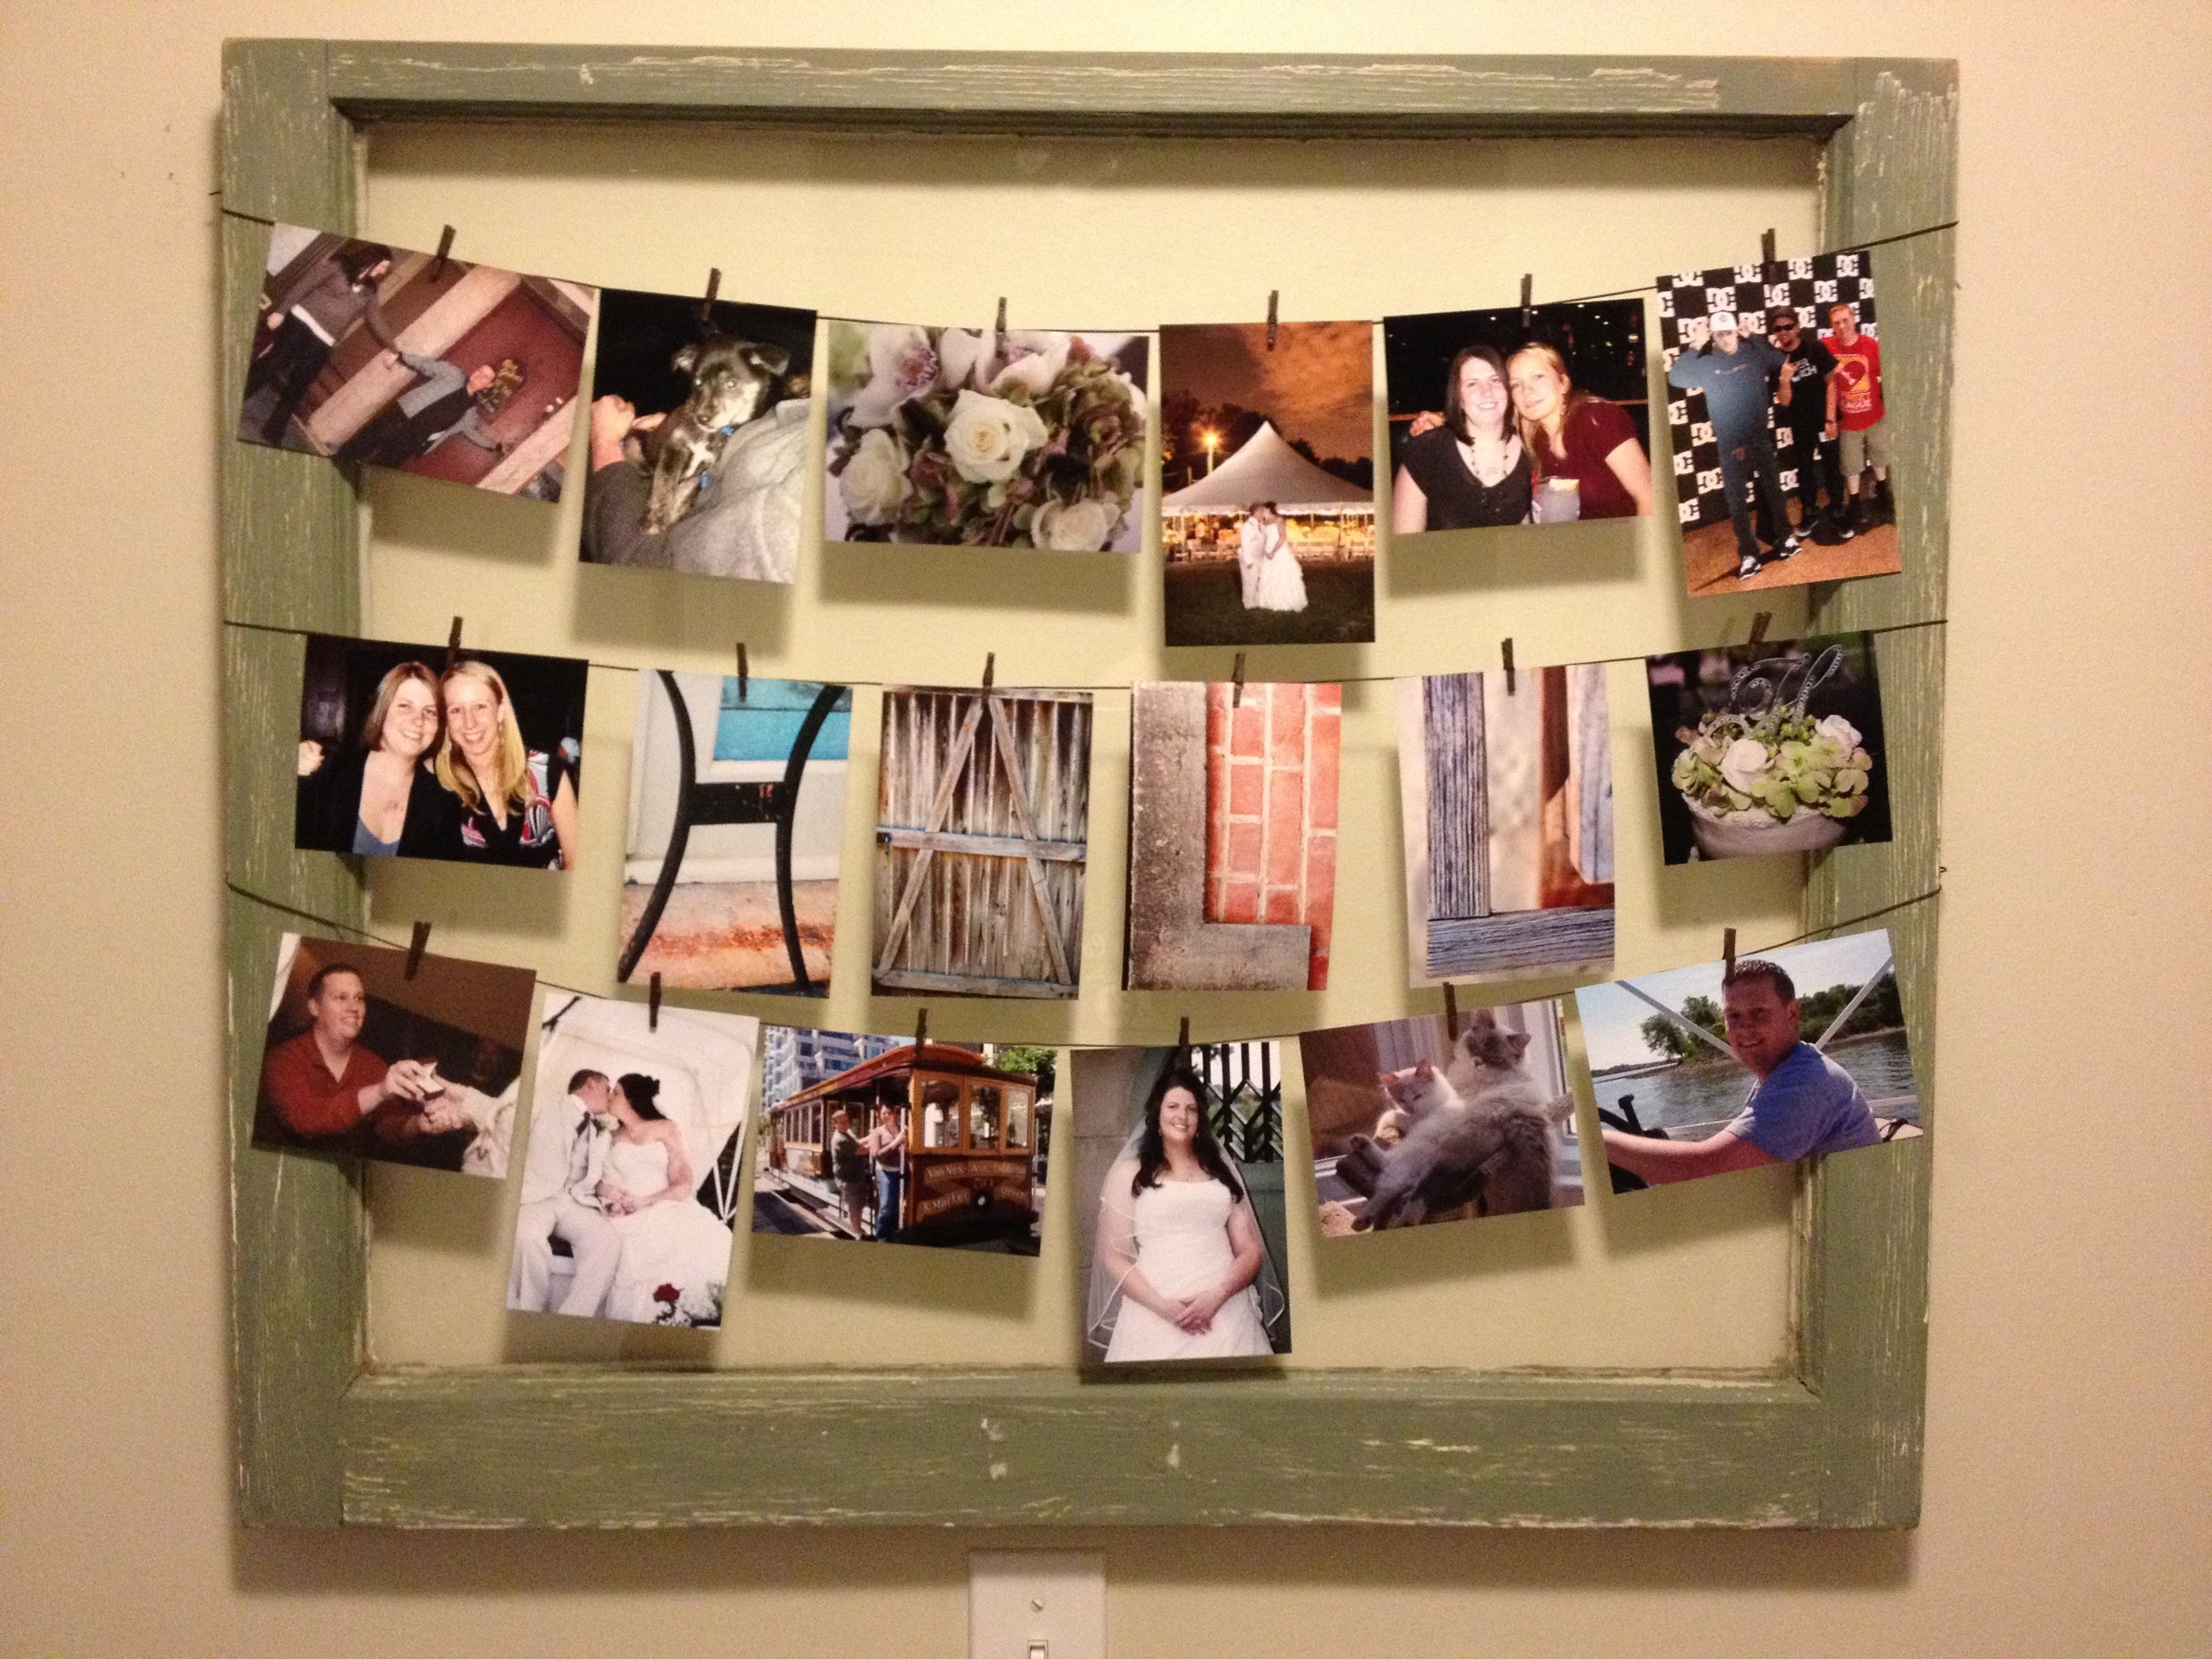 Pin By Stephanie Hall On My Pinterest Picture Frame Decor Clothesline Pictures Decor